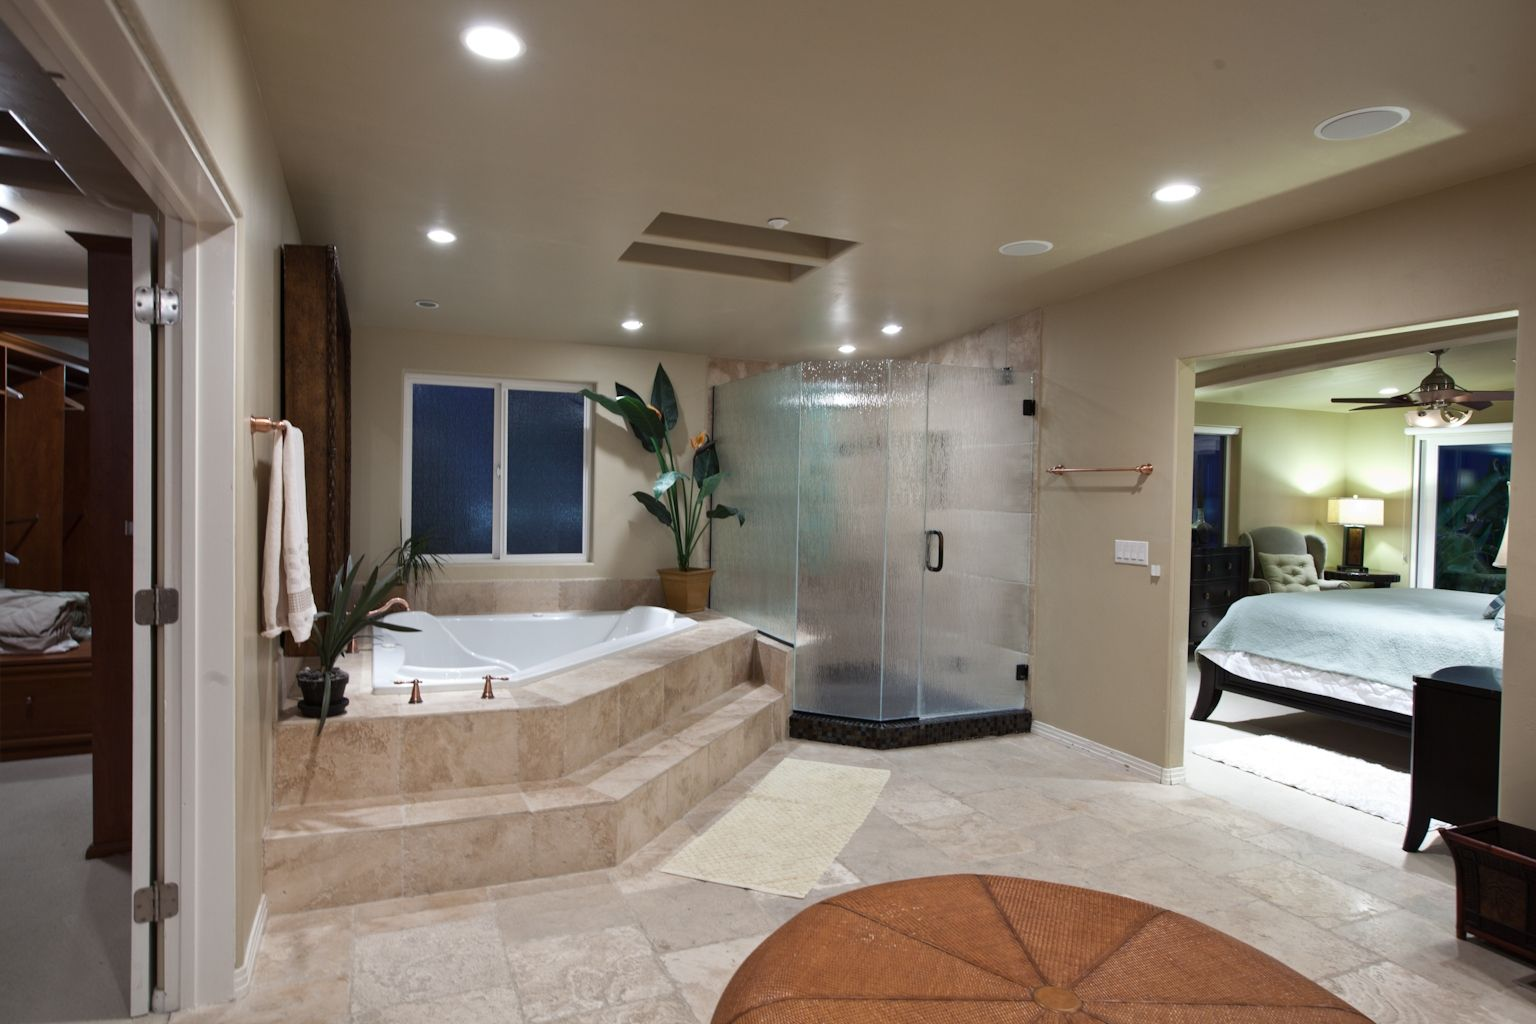 Master bathroom designs master bathroom bedroom interior for Small bedroom with bathroom design